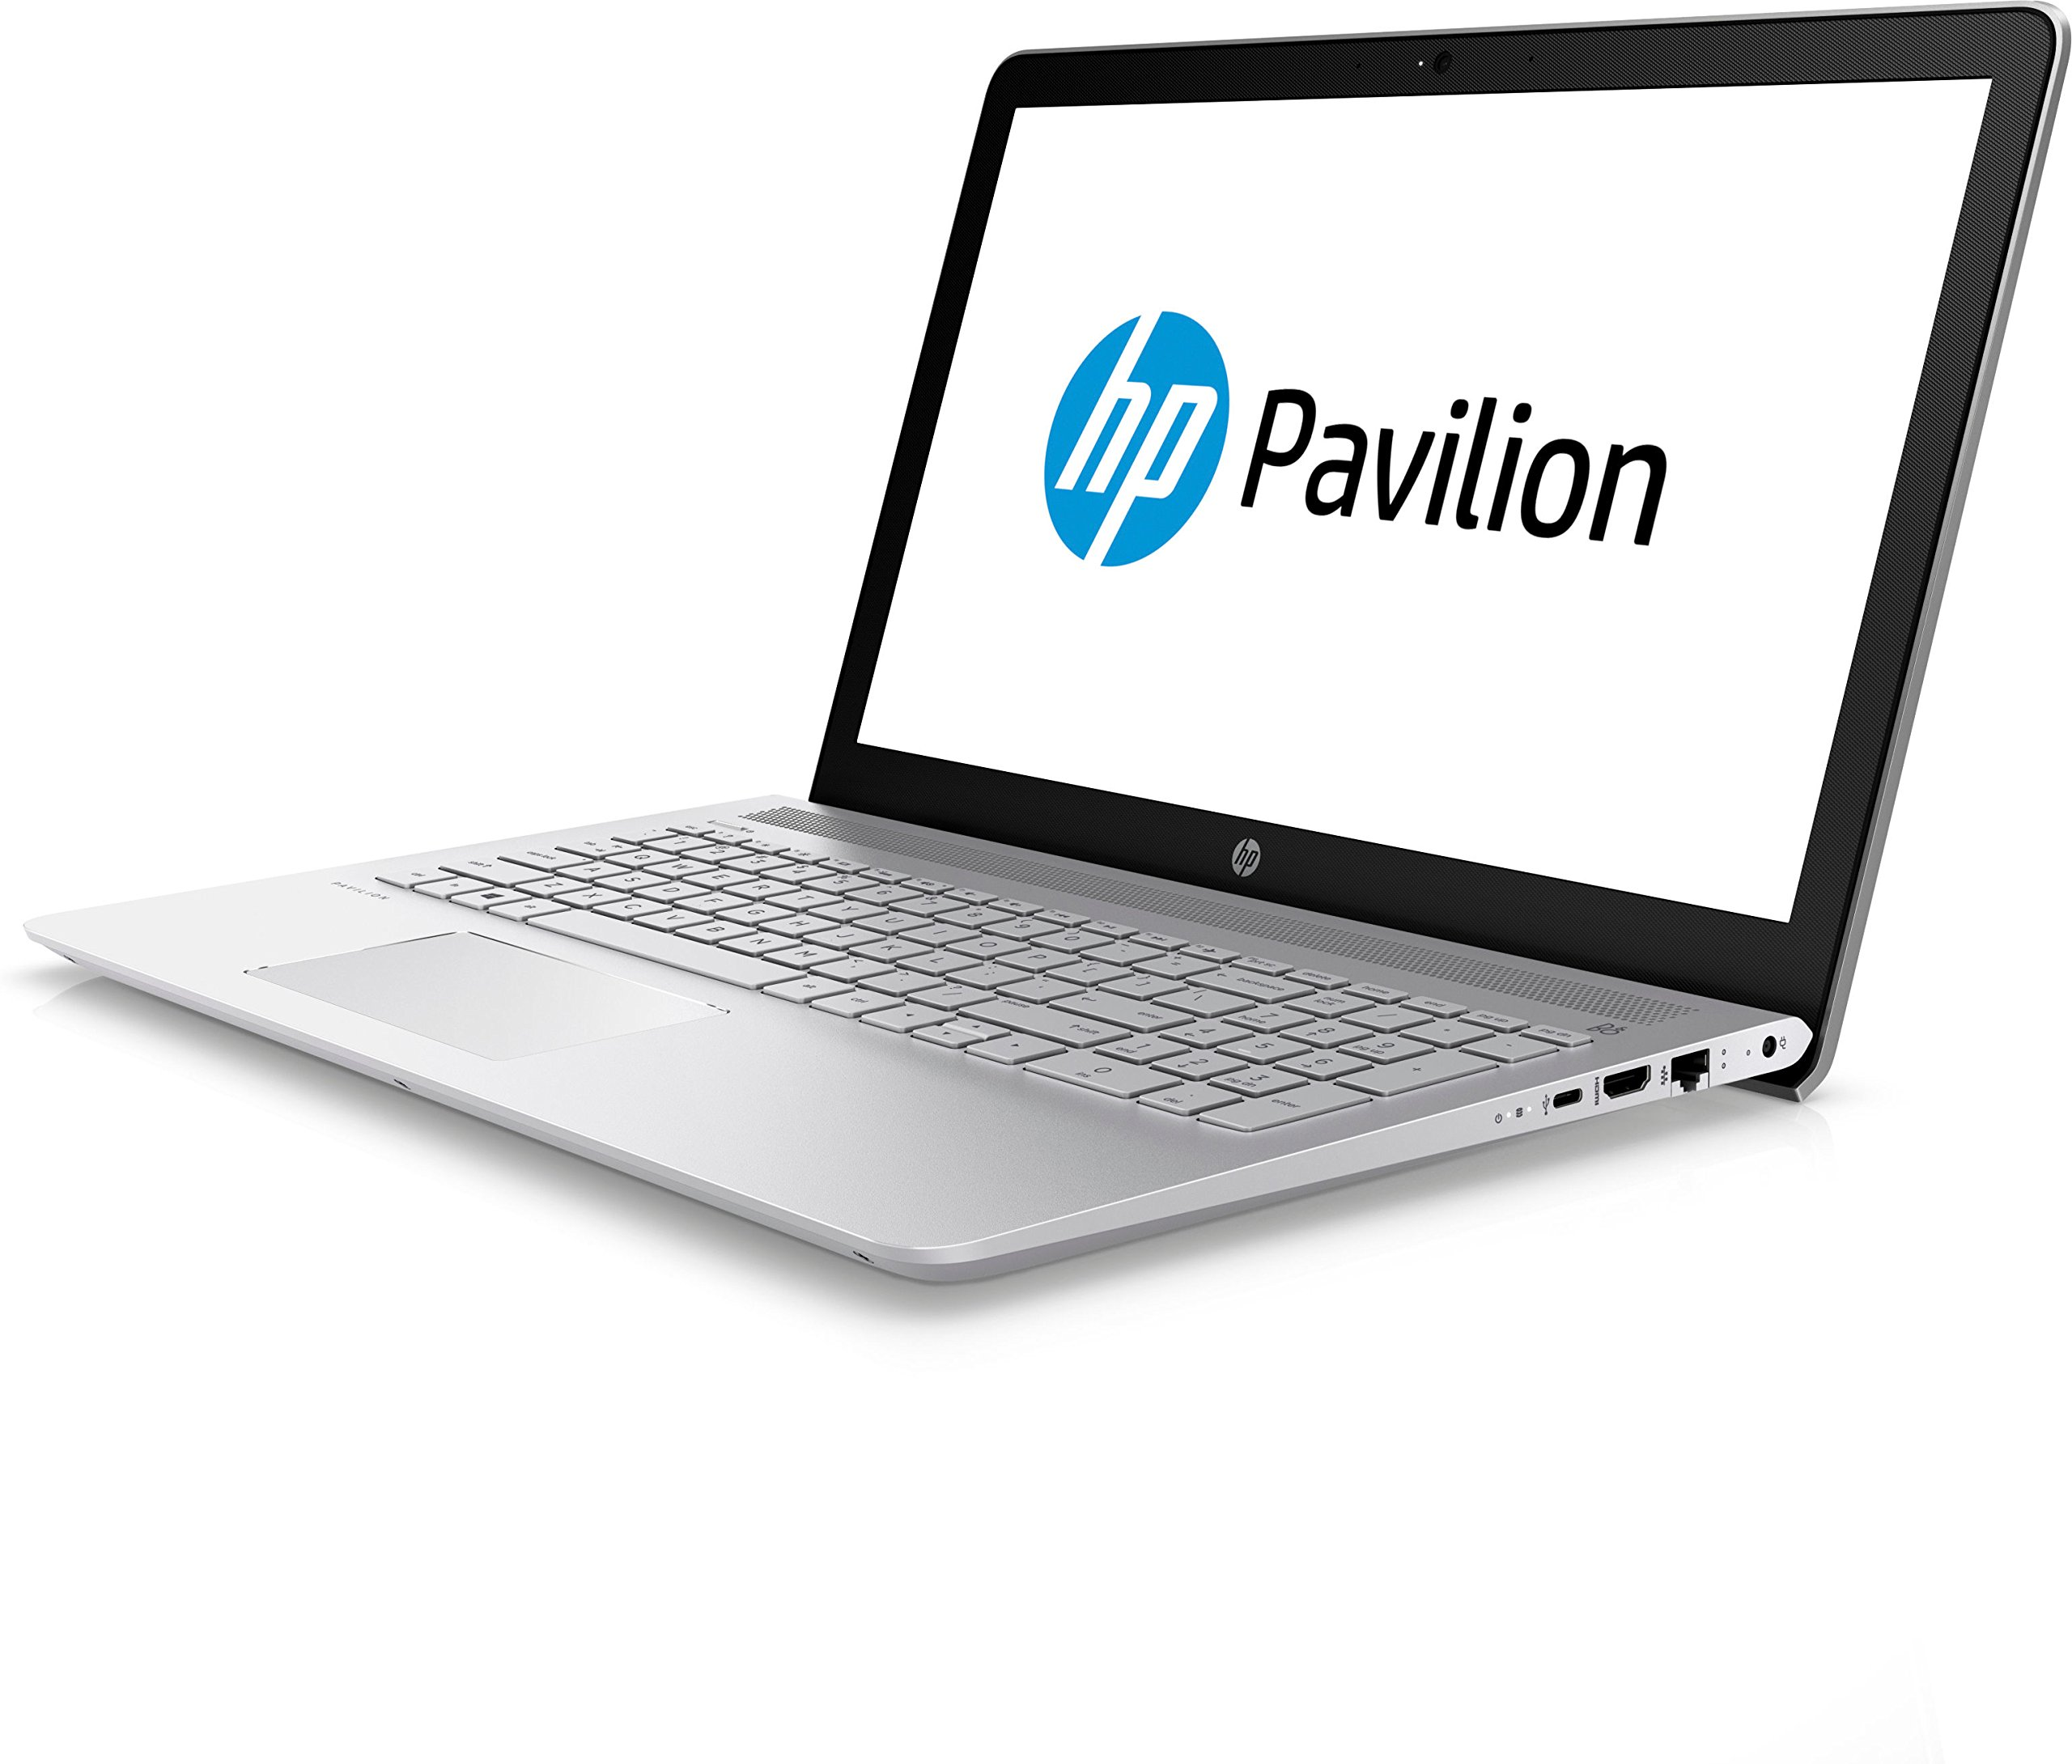 2017 HP Pavilion Business Flagship Laptop PC 15.6'' Full HD IPS WLED-backlit Display Intel i7-7500U Processor 12GB DDR4 Memory 1TB HDD Backlit-Keyboard Bluetooth Webcam B&O Audio Windows 10-Gray by HP (Image #2)